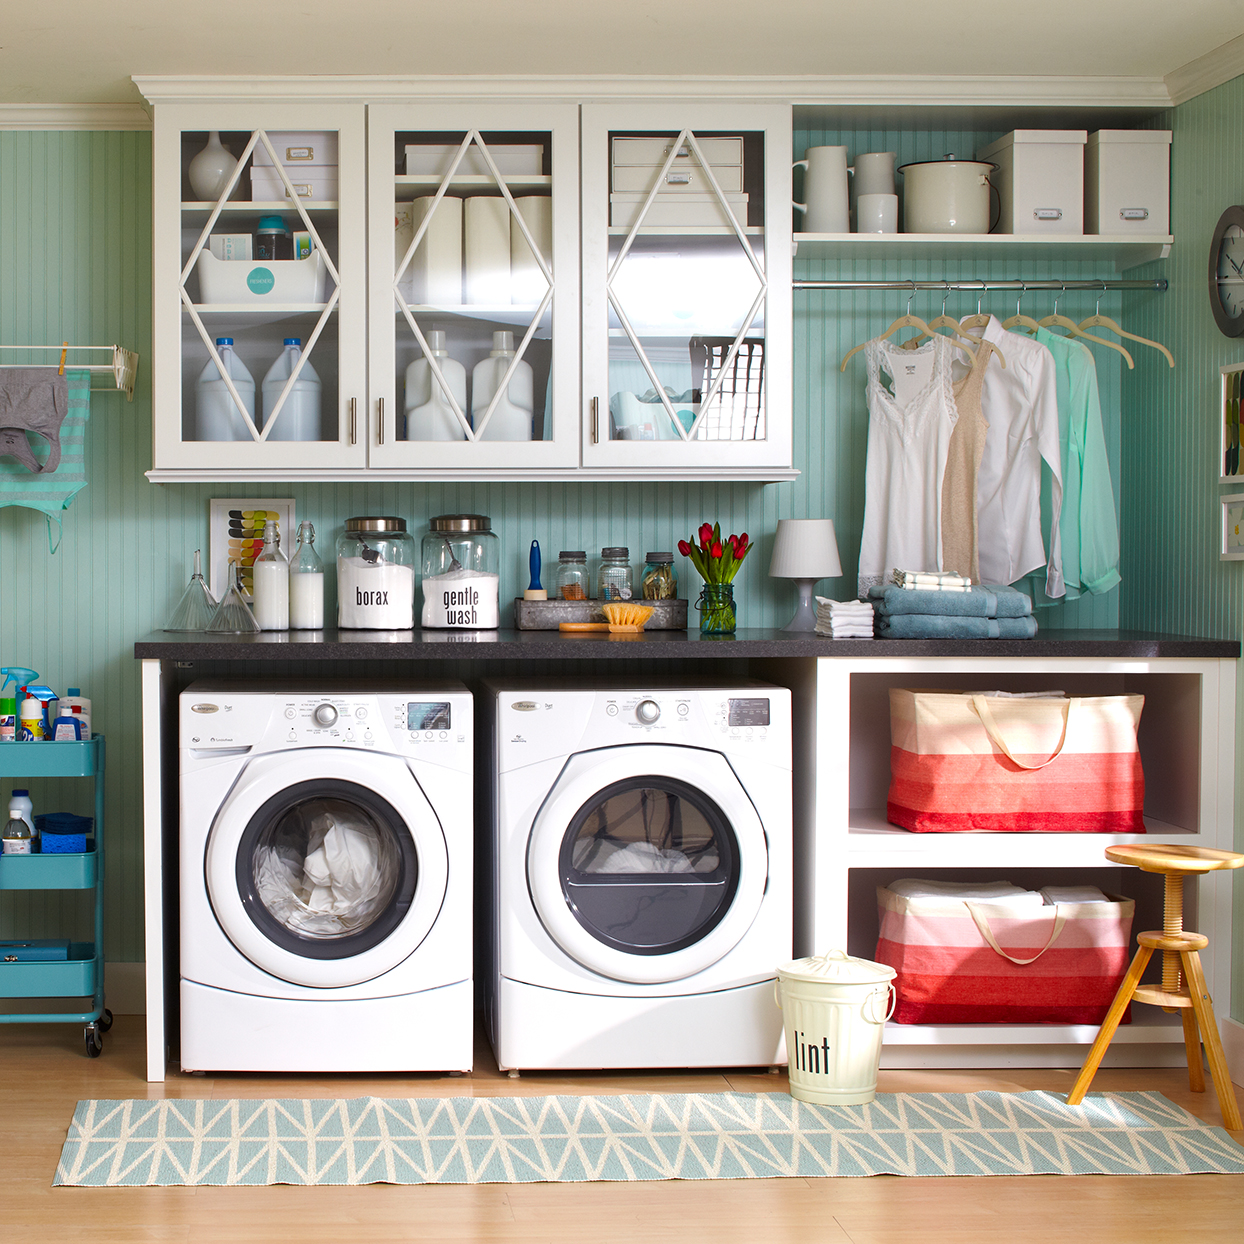 Home Organization $10,000 Sweepstakes